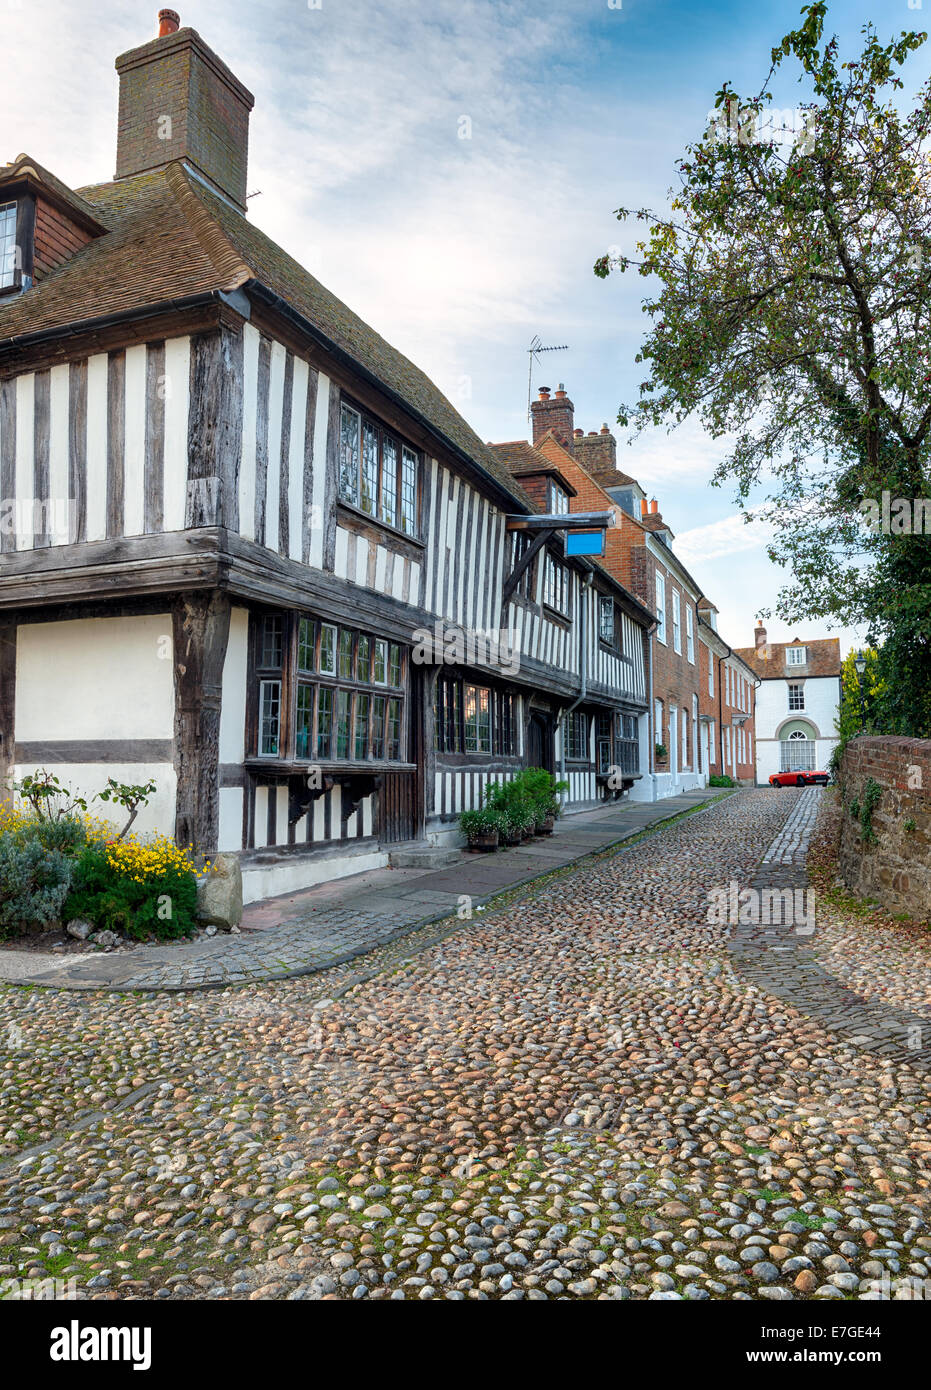 Half timbered Tudor houses on cobblestoned streets at Rye in East Sussex - Stock Image